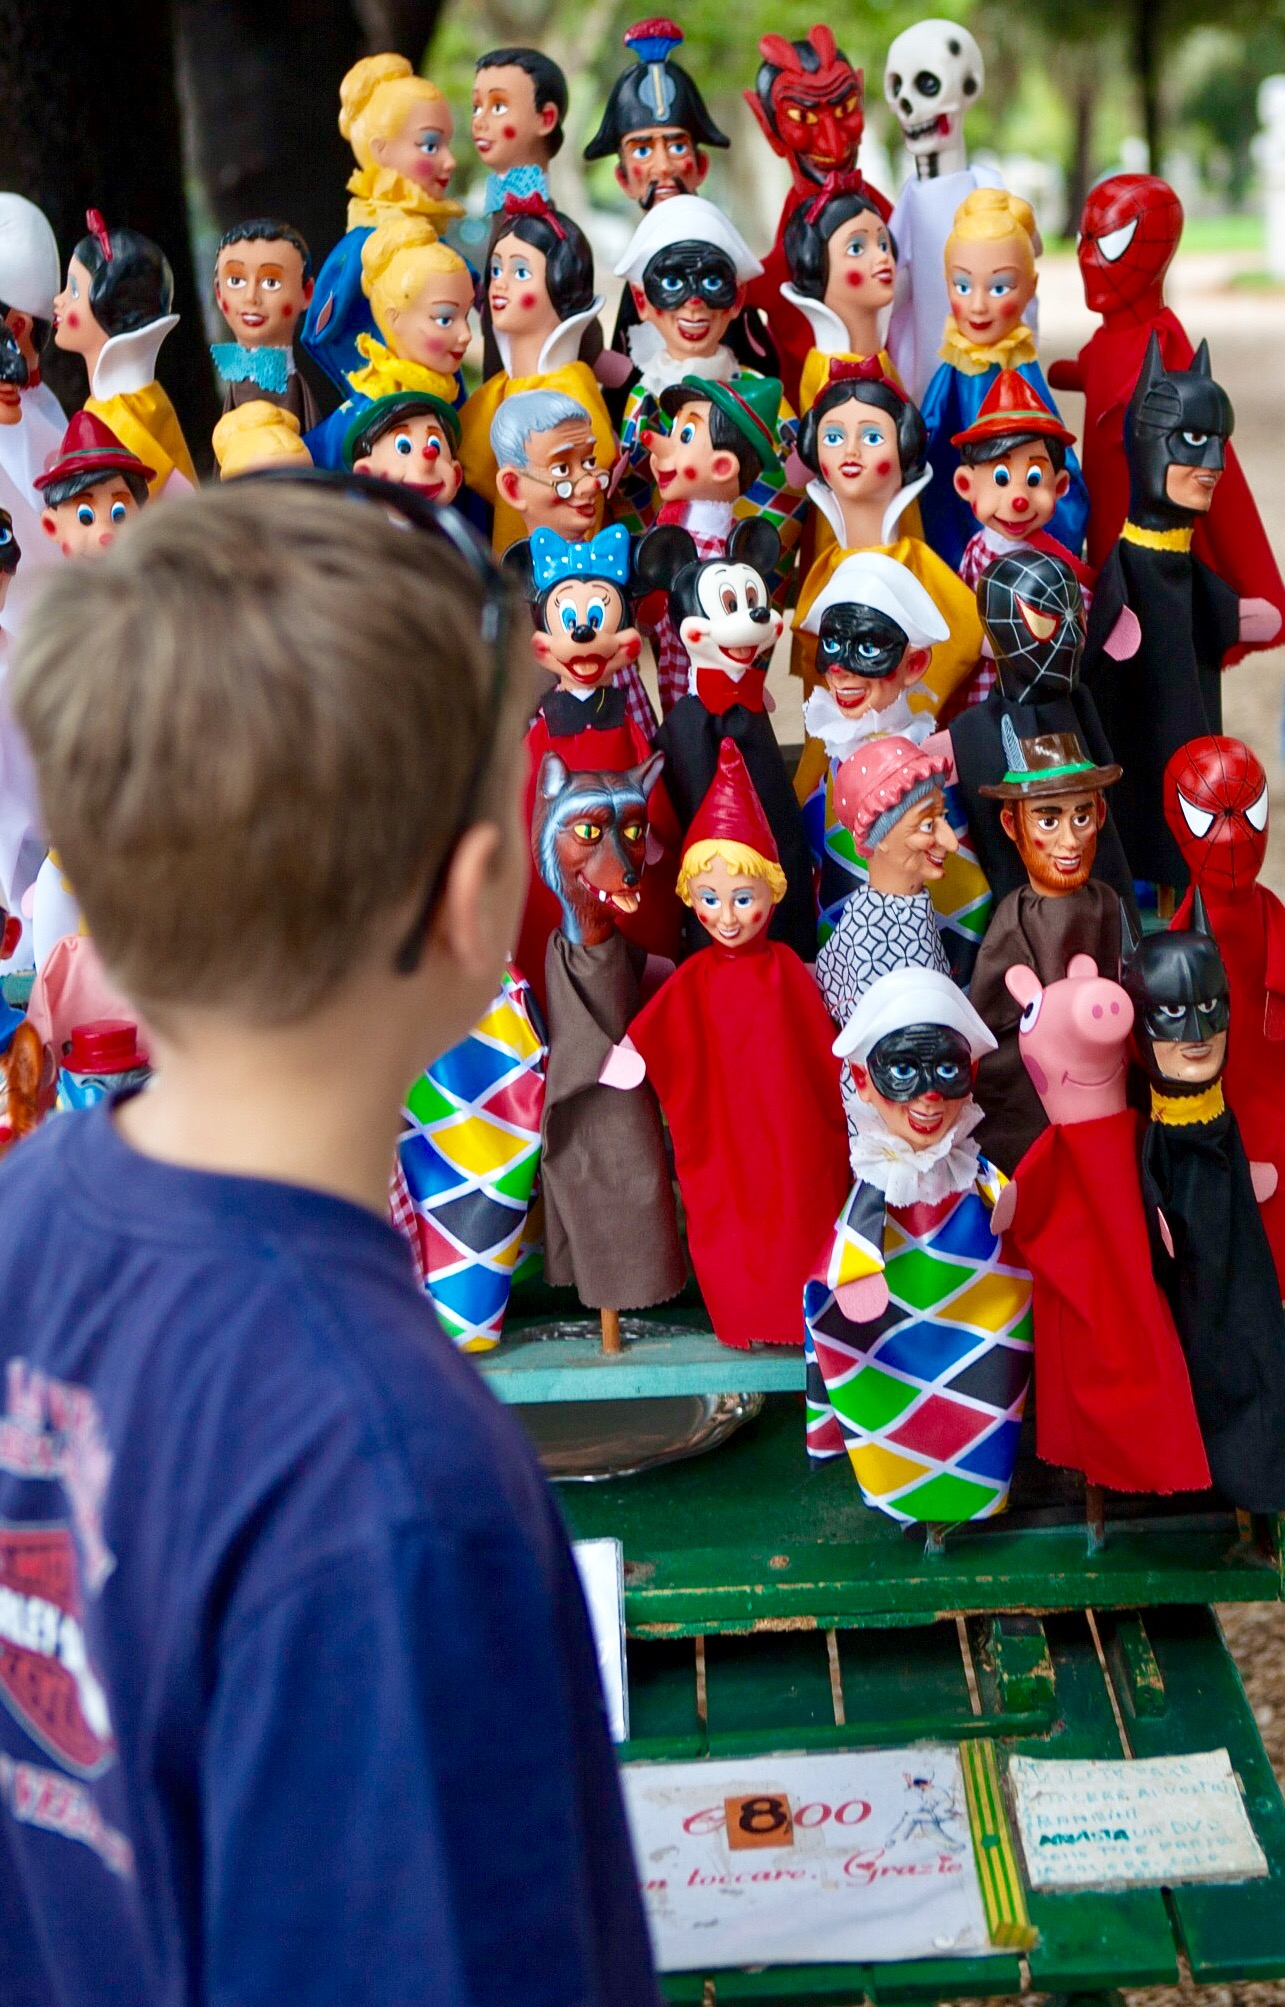 The striking puppets at the puppet theatre